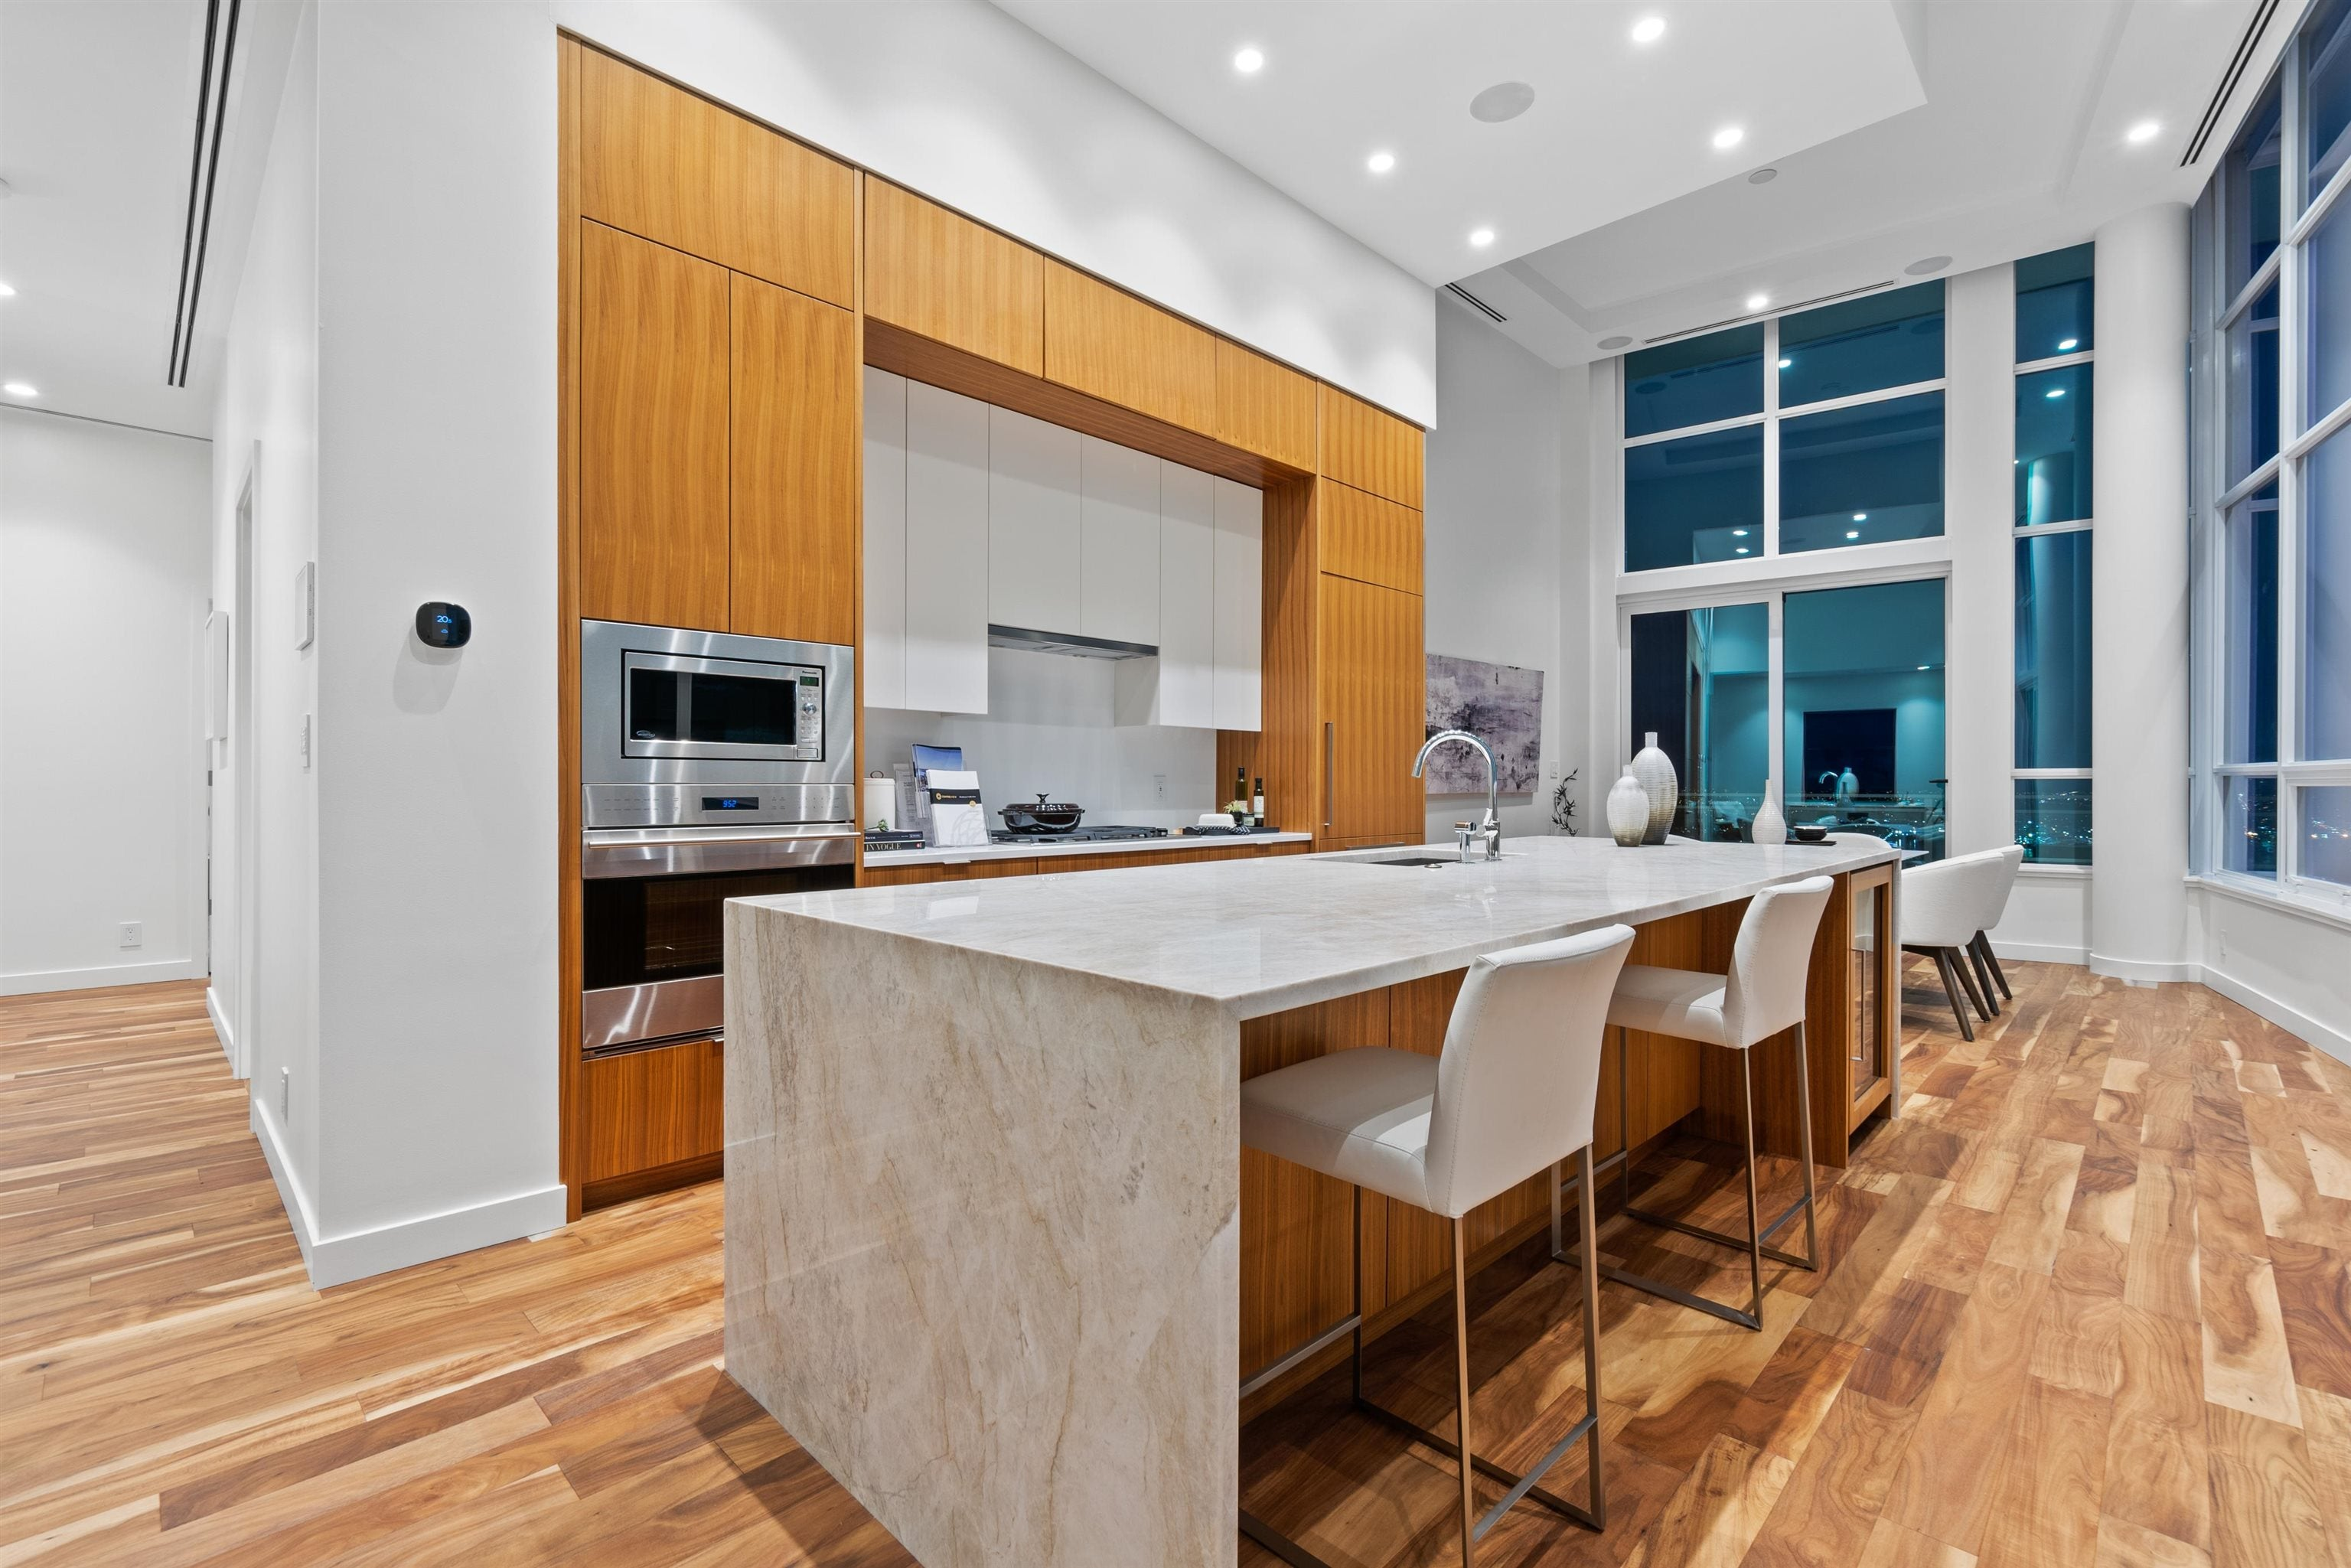 2402 125 E 14TH STREET - Central Lonsdale Apartment/Condo for sale, 2 Bedrooms (R2617870) - #9